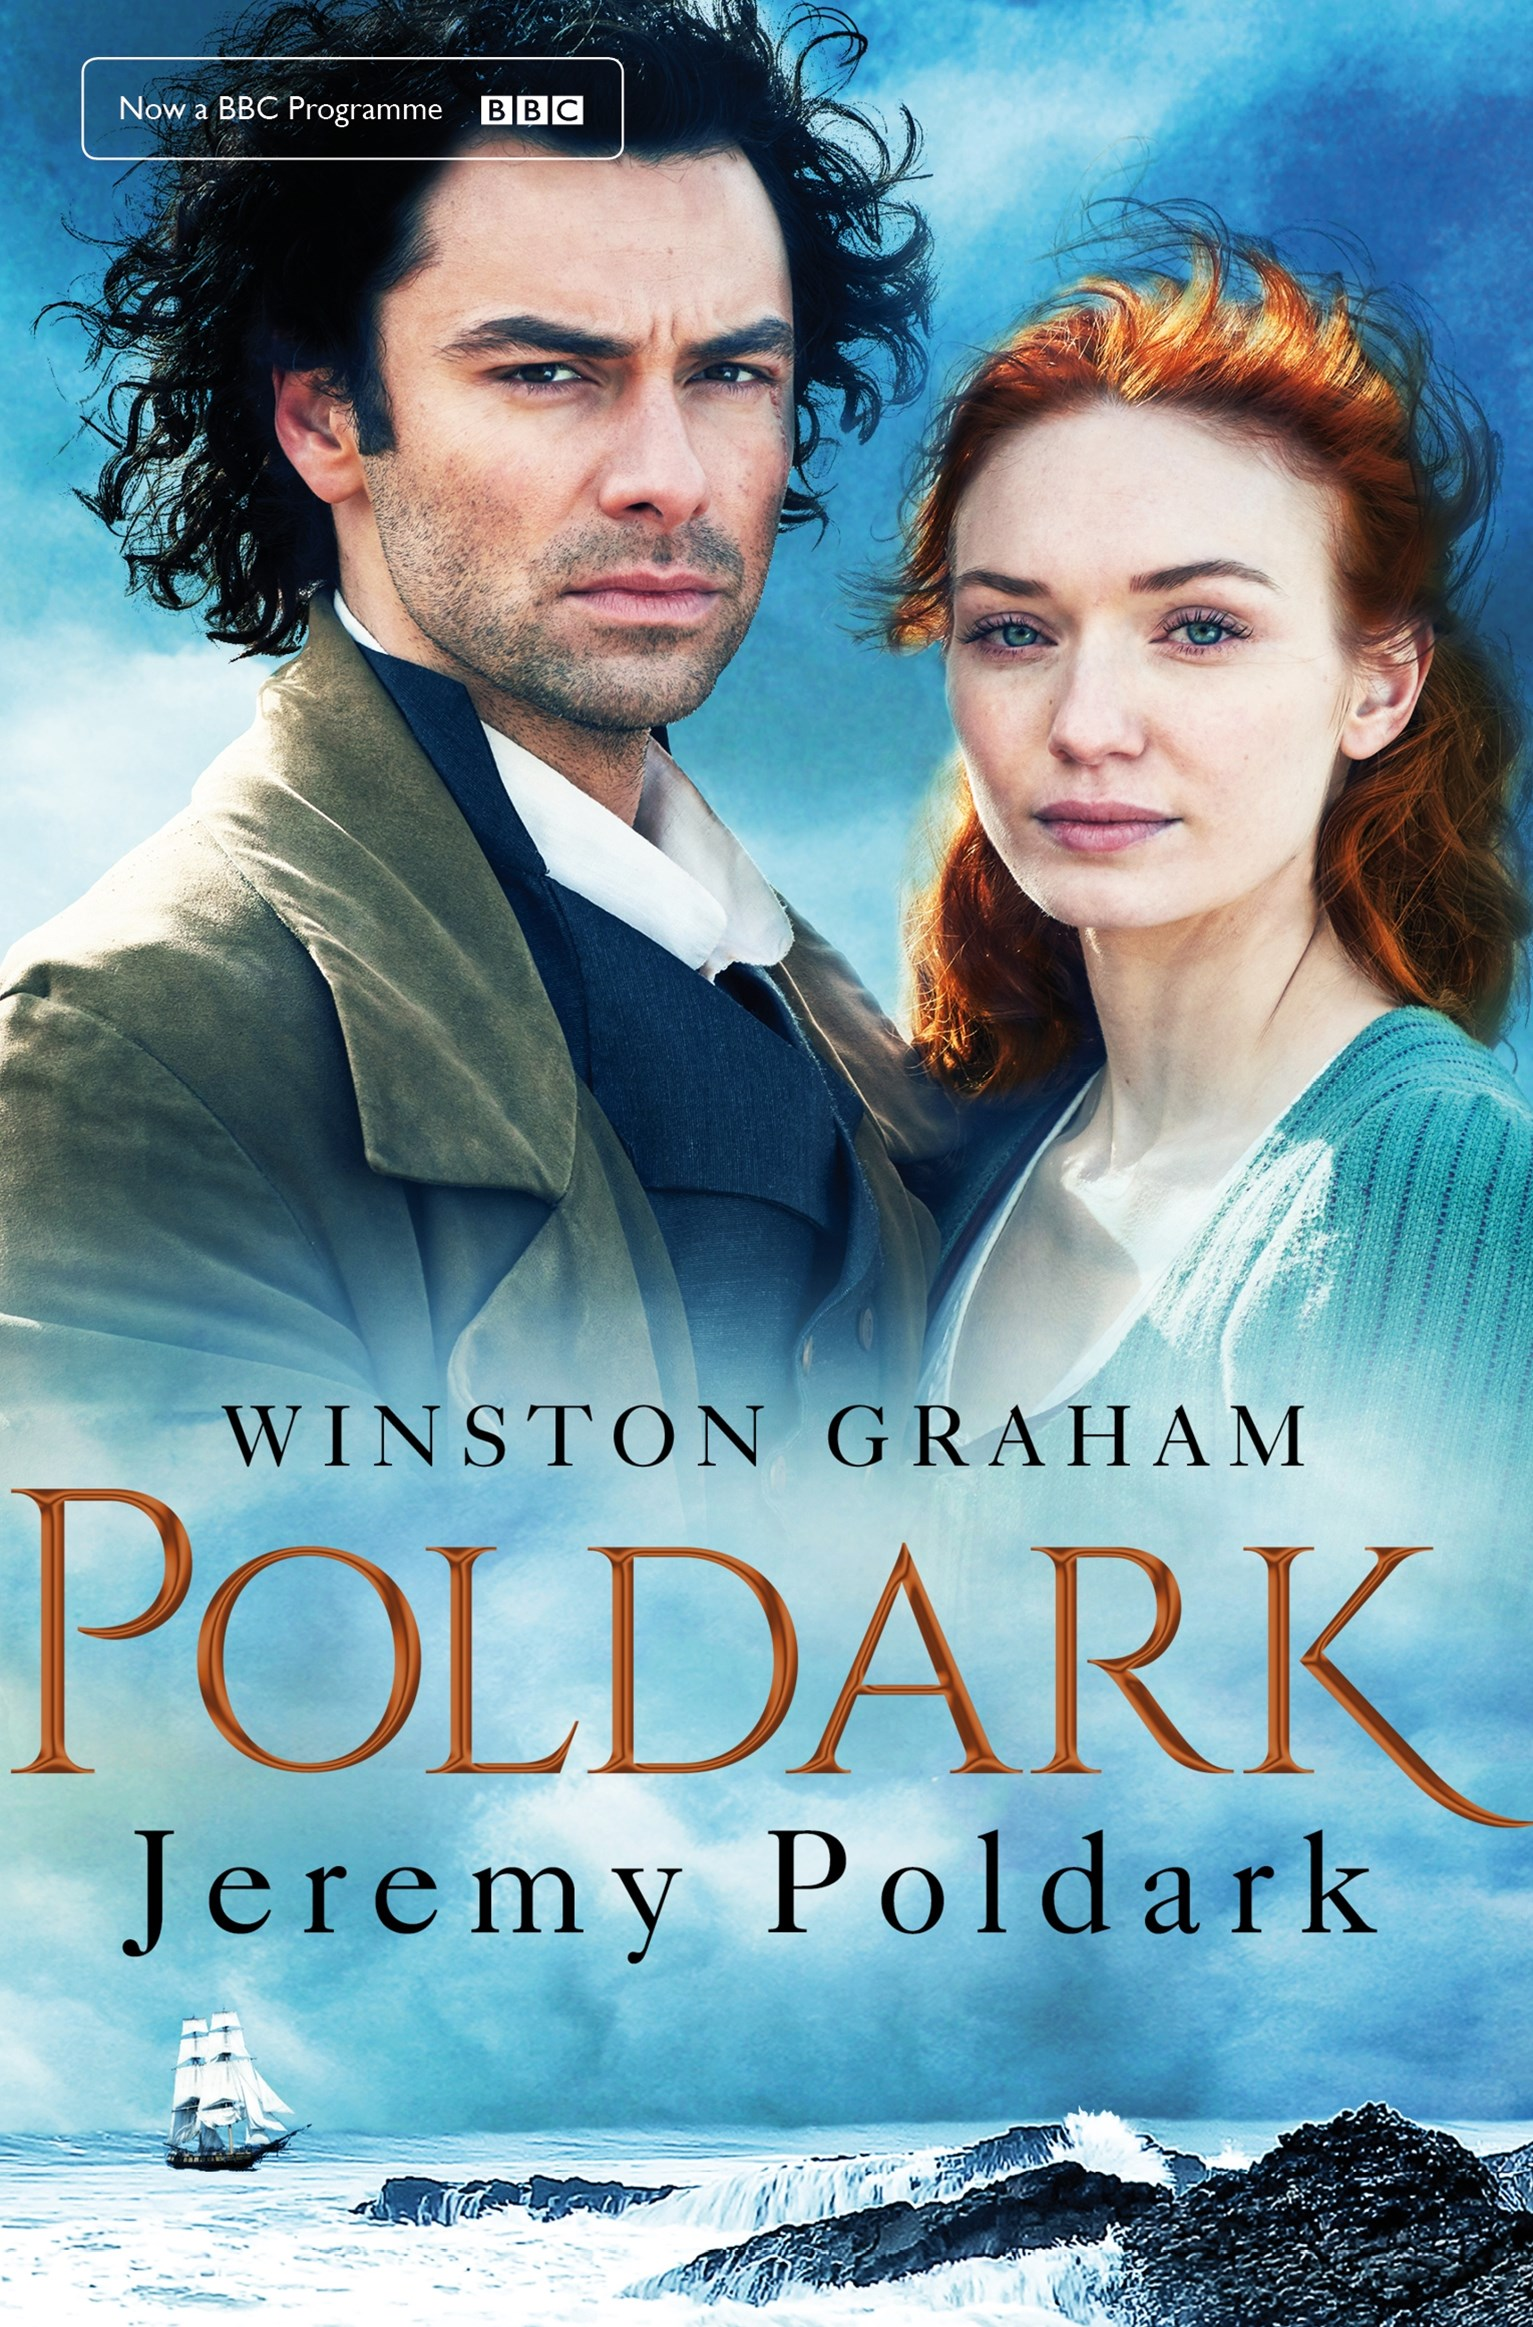 Jeremy Poldark: A Poldark Novel 3